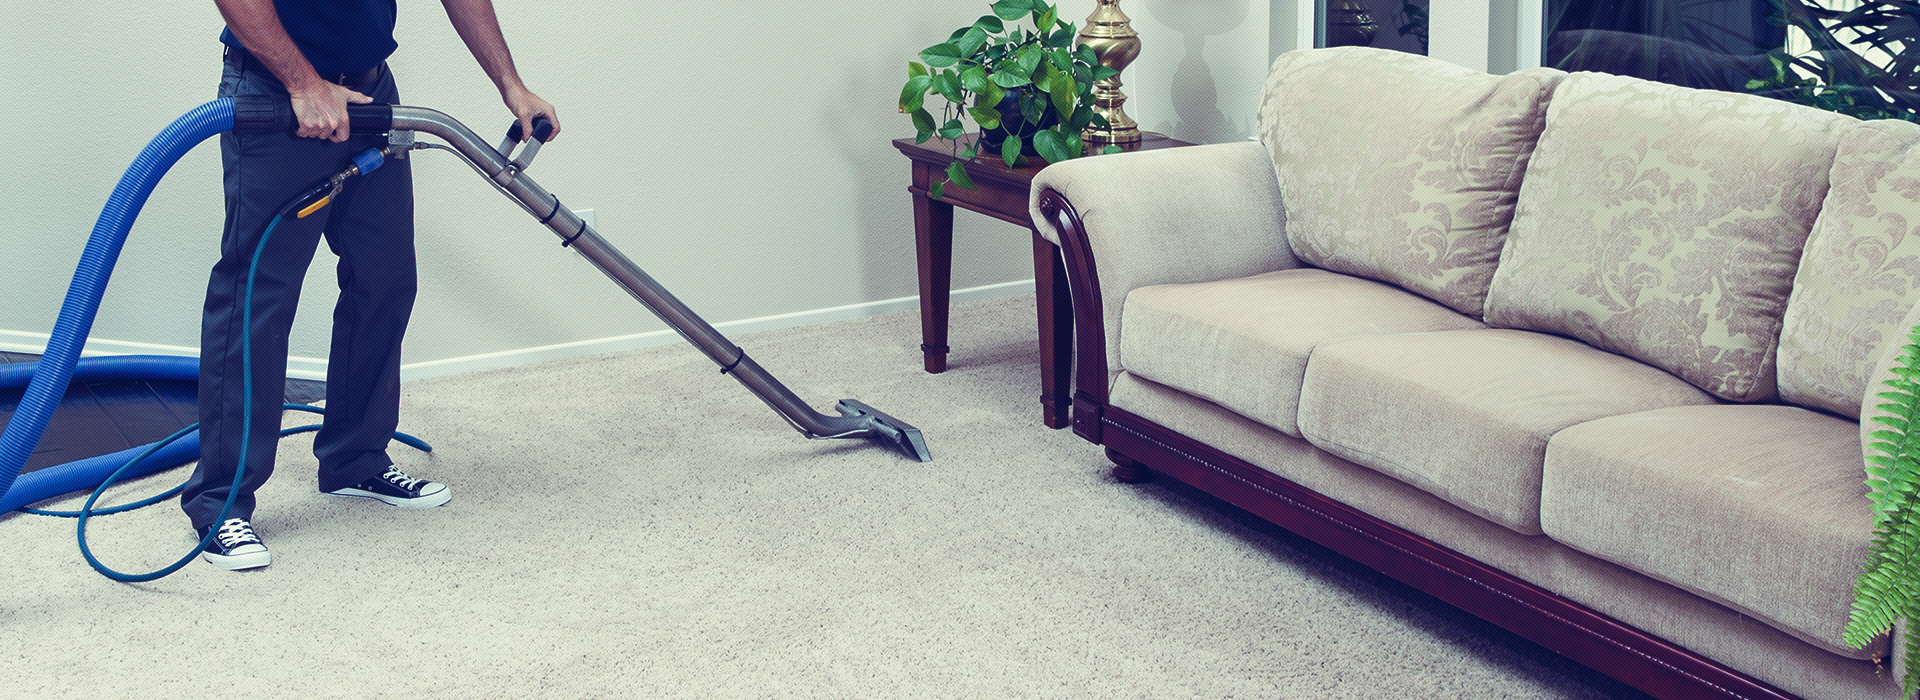 Carpet Repair | Water Damaged Wet